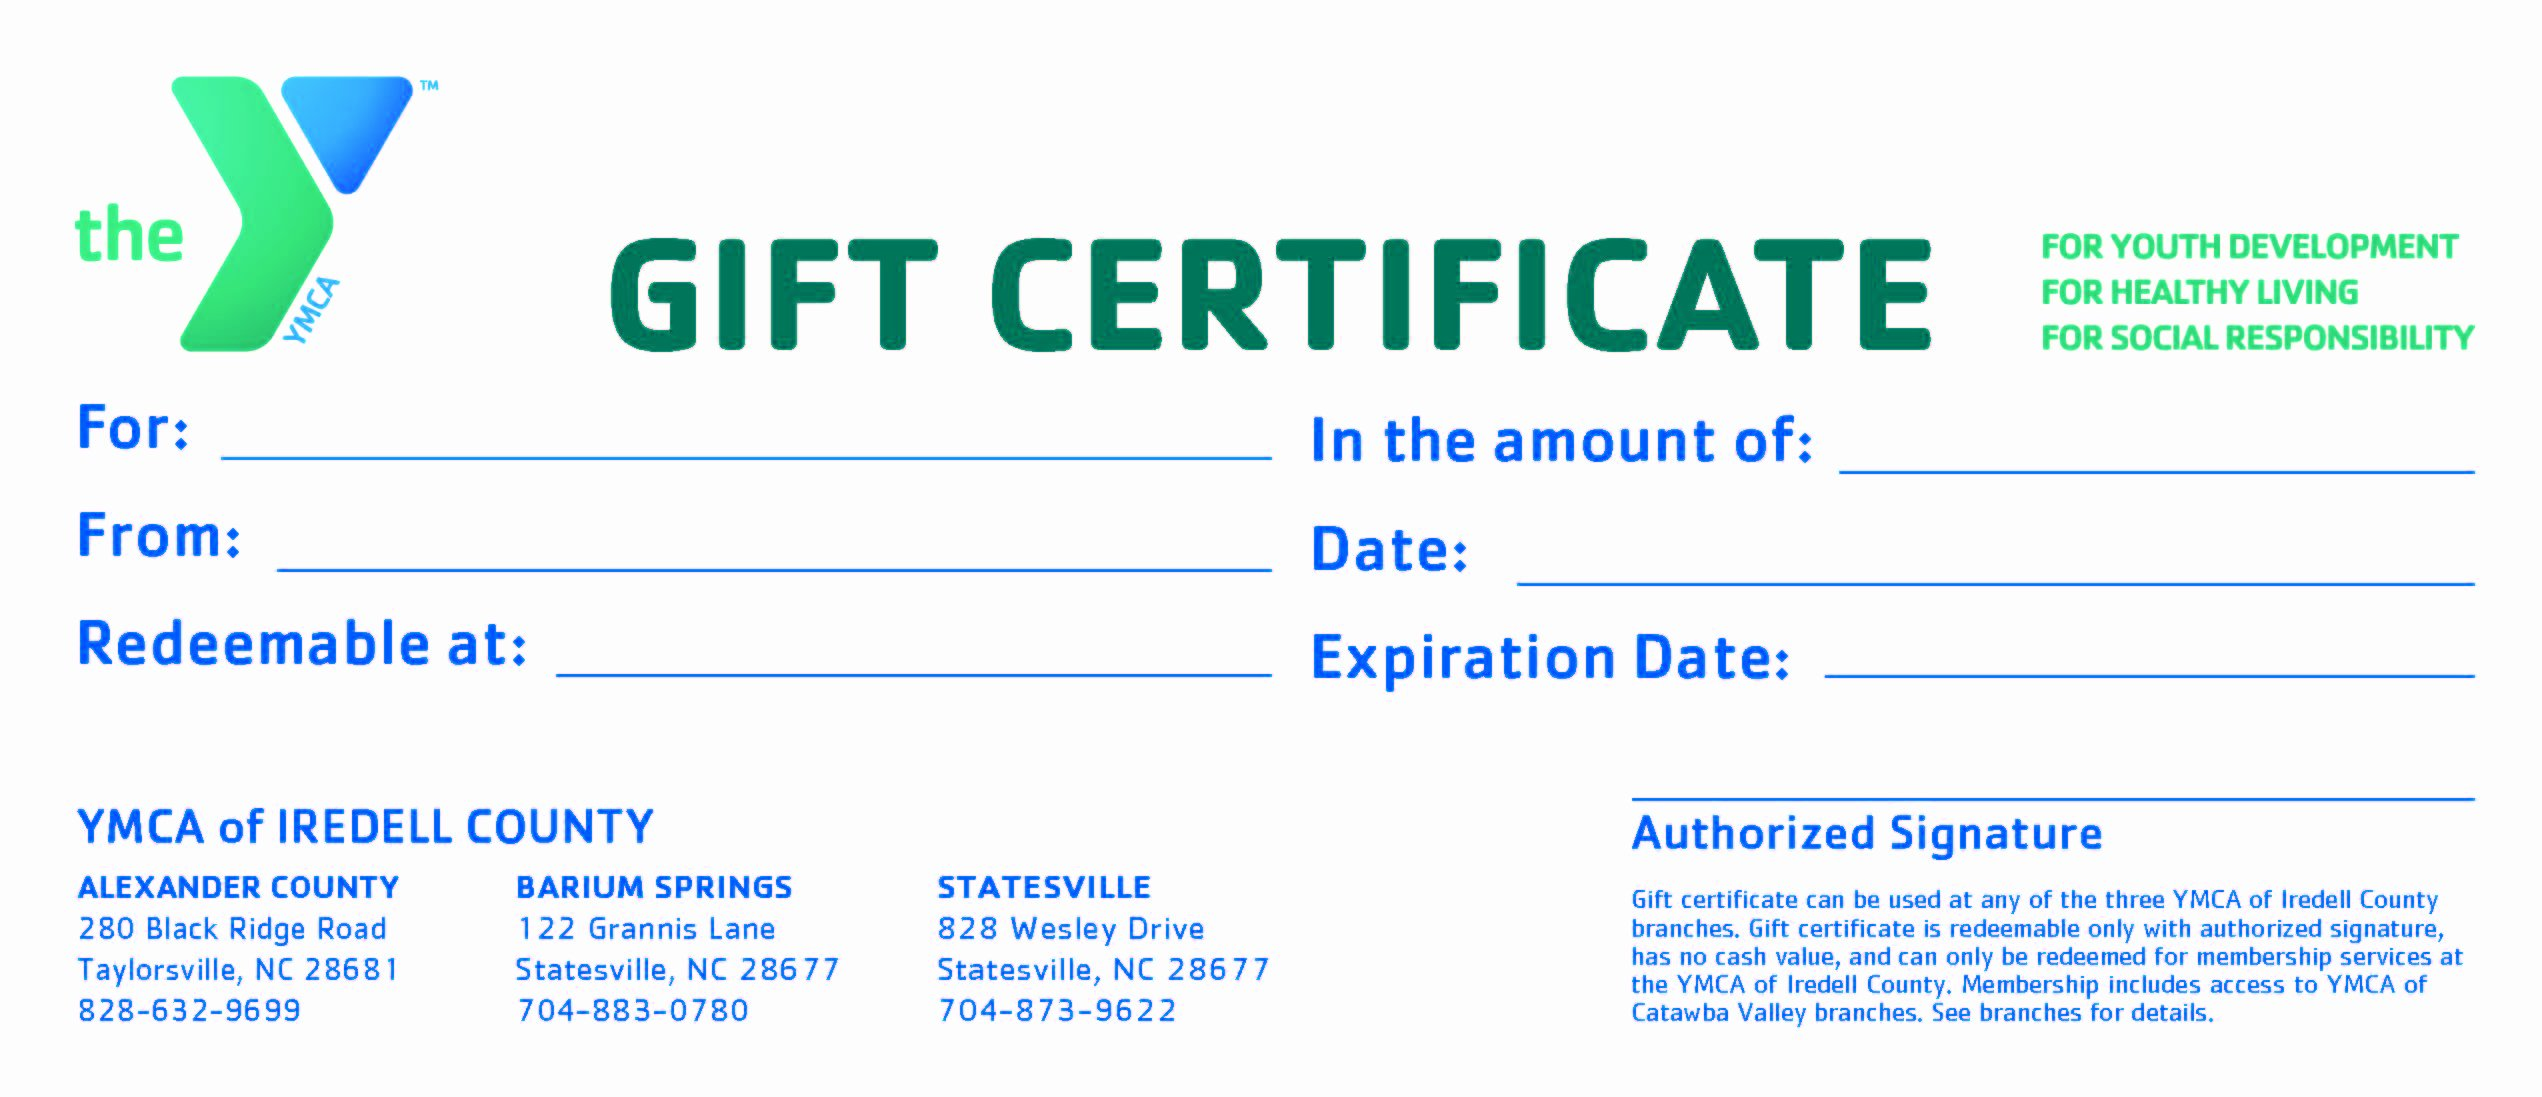 Gift Certificate Wording Inspirational November 2010